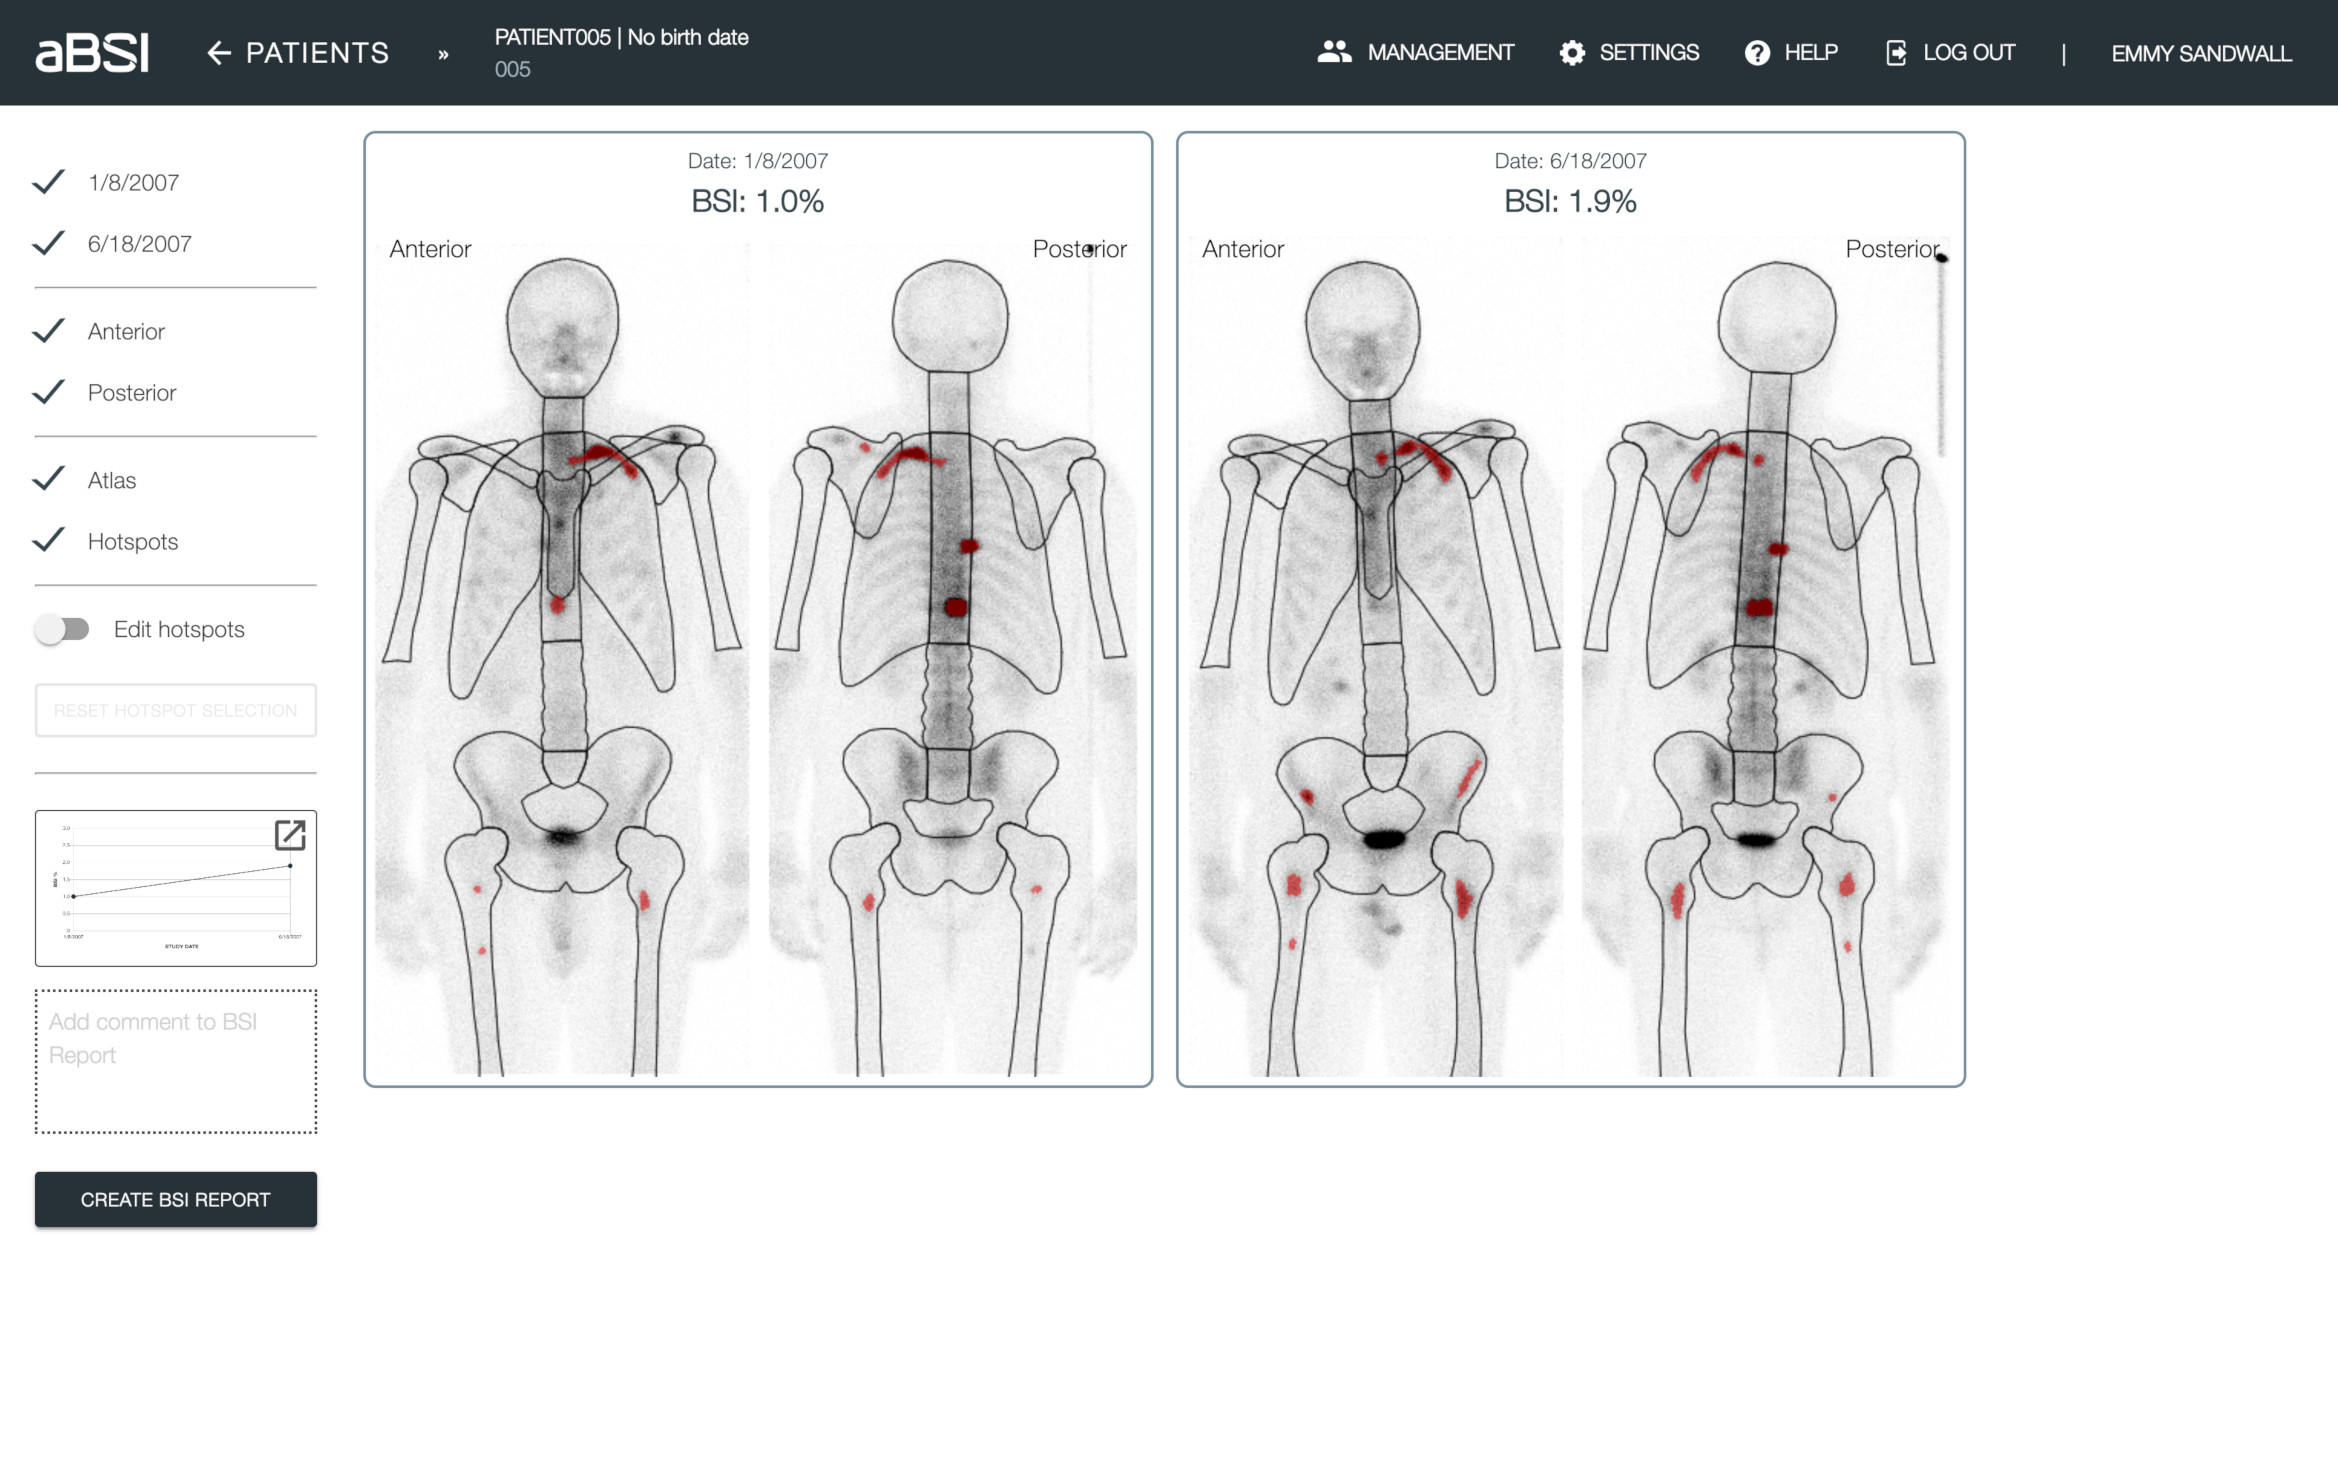 Pre-selected Hotspots  aBSI automatically calculates the BSI values that reflects the extent of skeletal involvement by tumor in whole body bone scans based on the pre-selected hotspots.